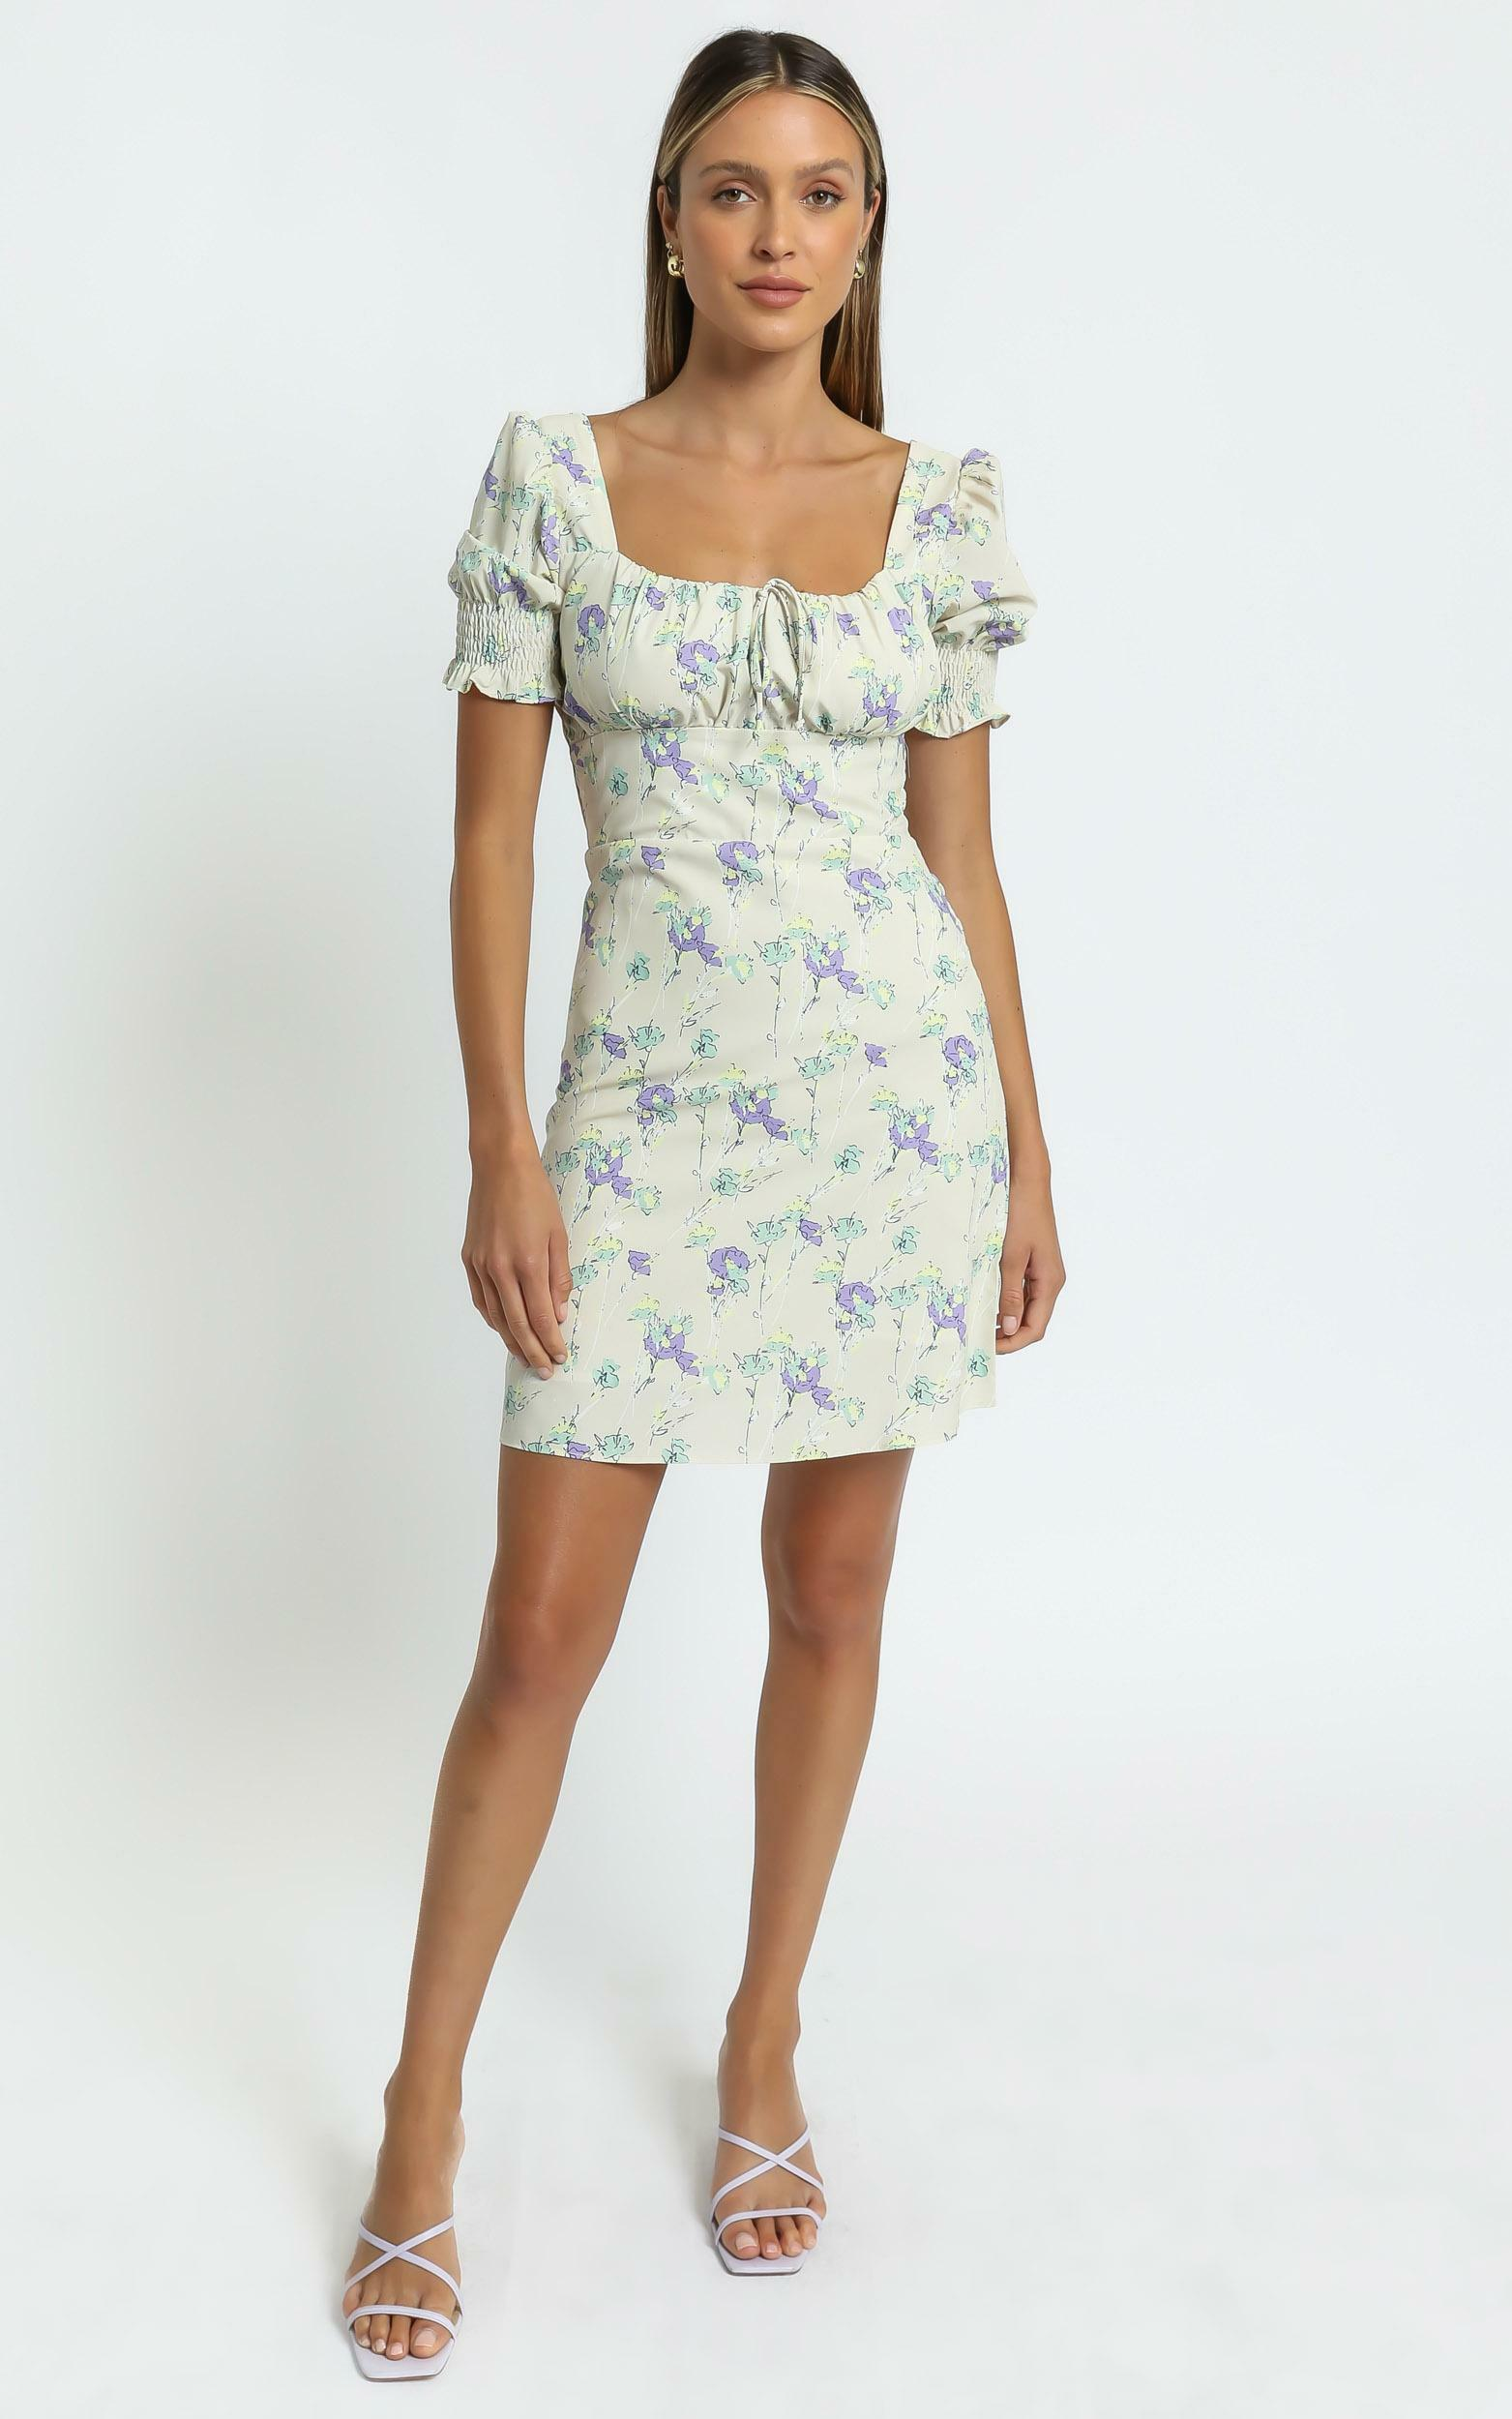 Sierra Dress in Yellow Floral - 8 (S), Yellow, hi-res image number null